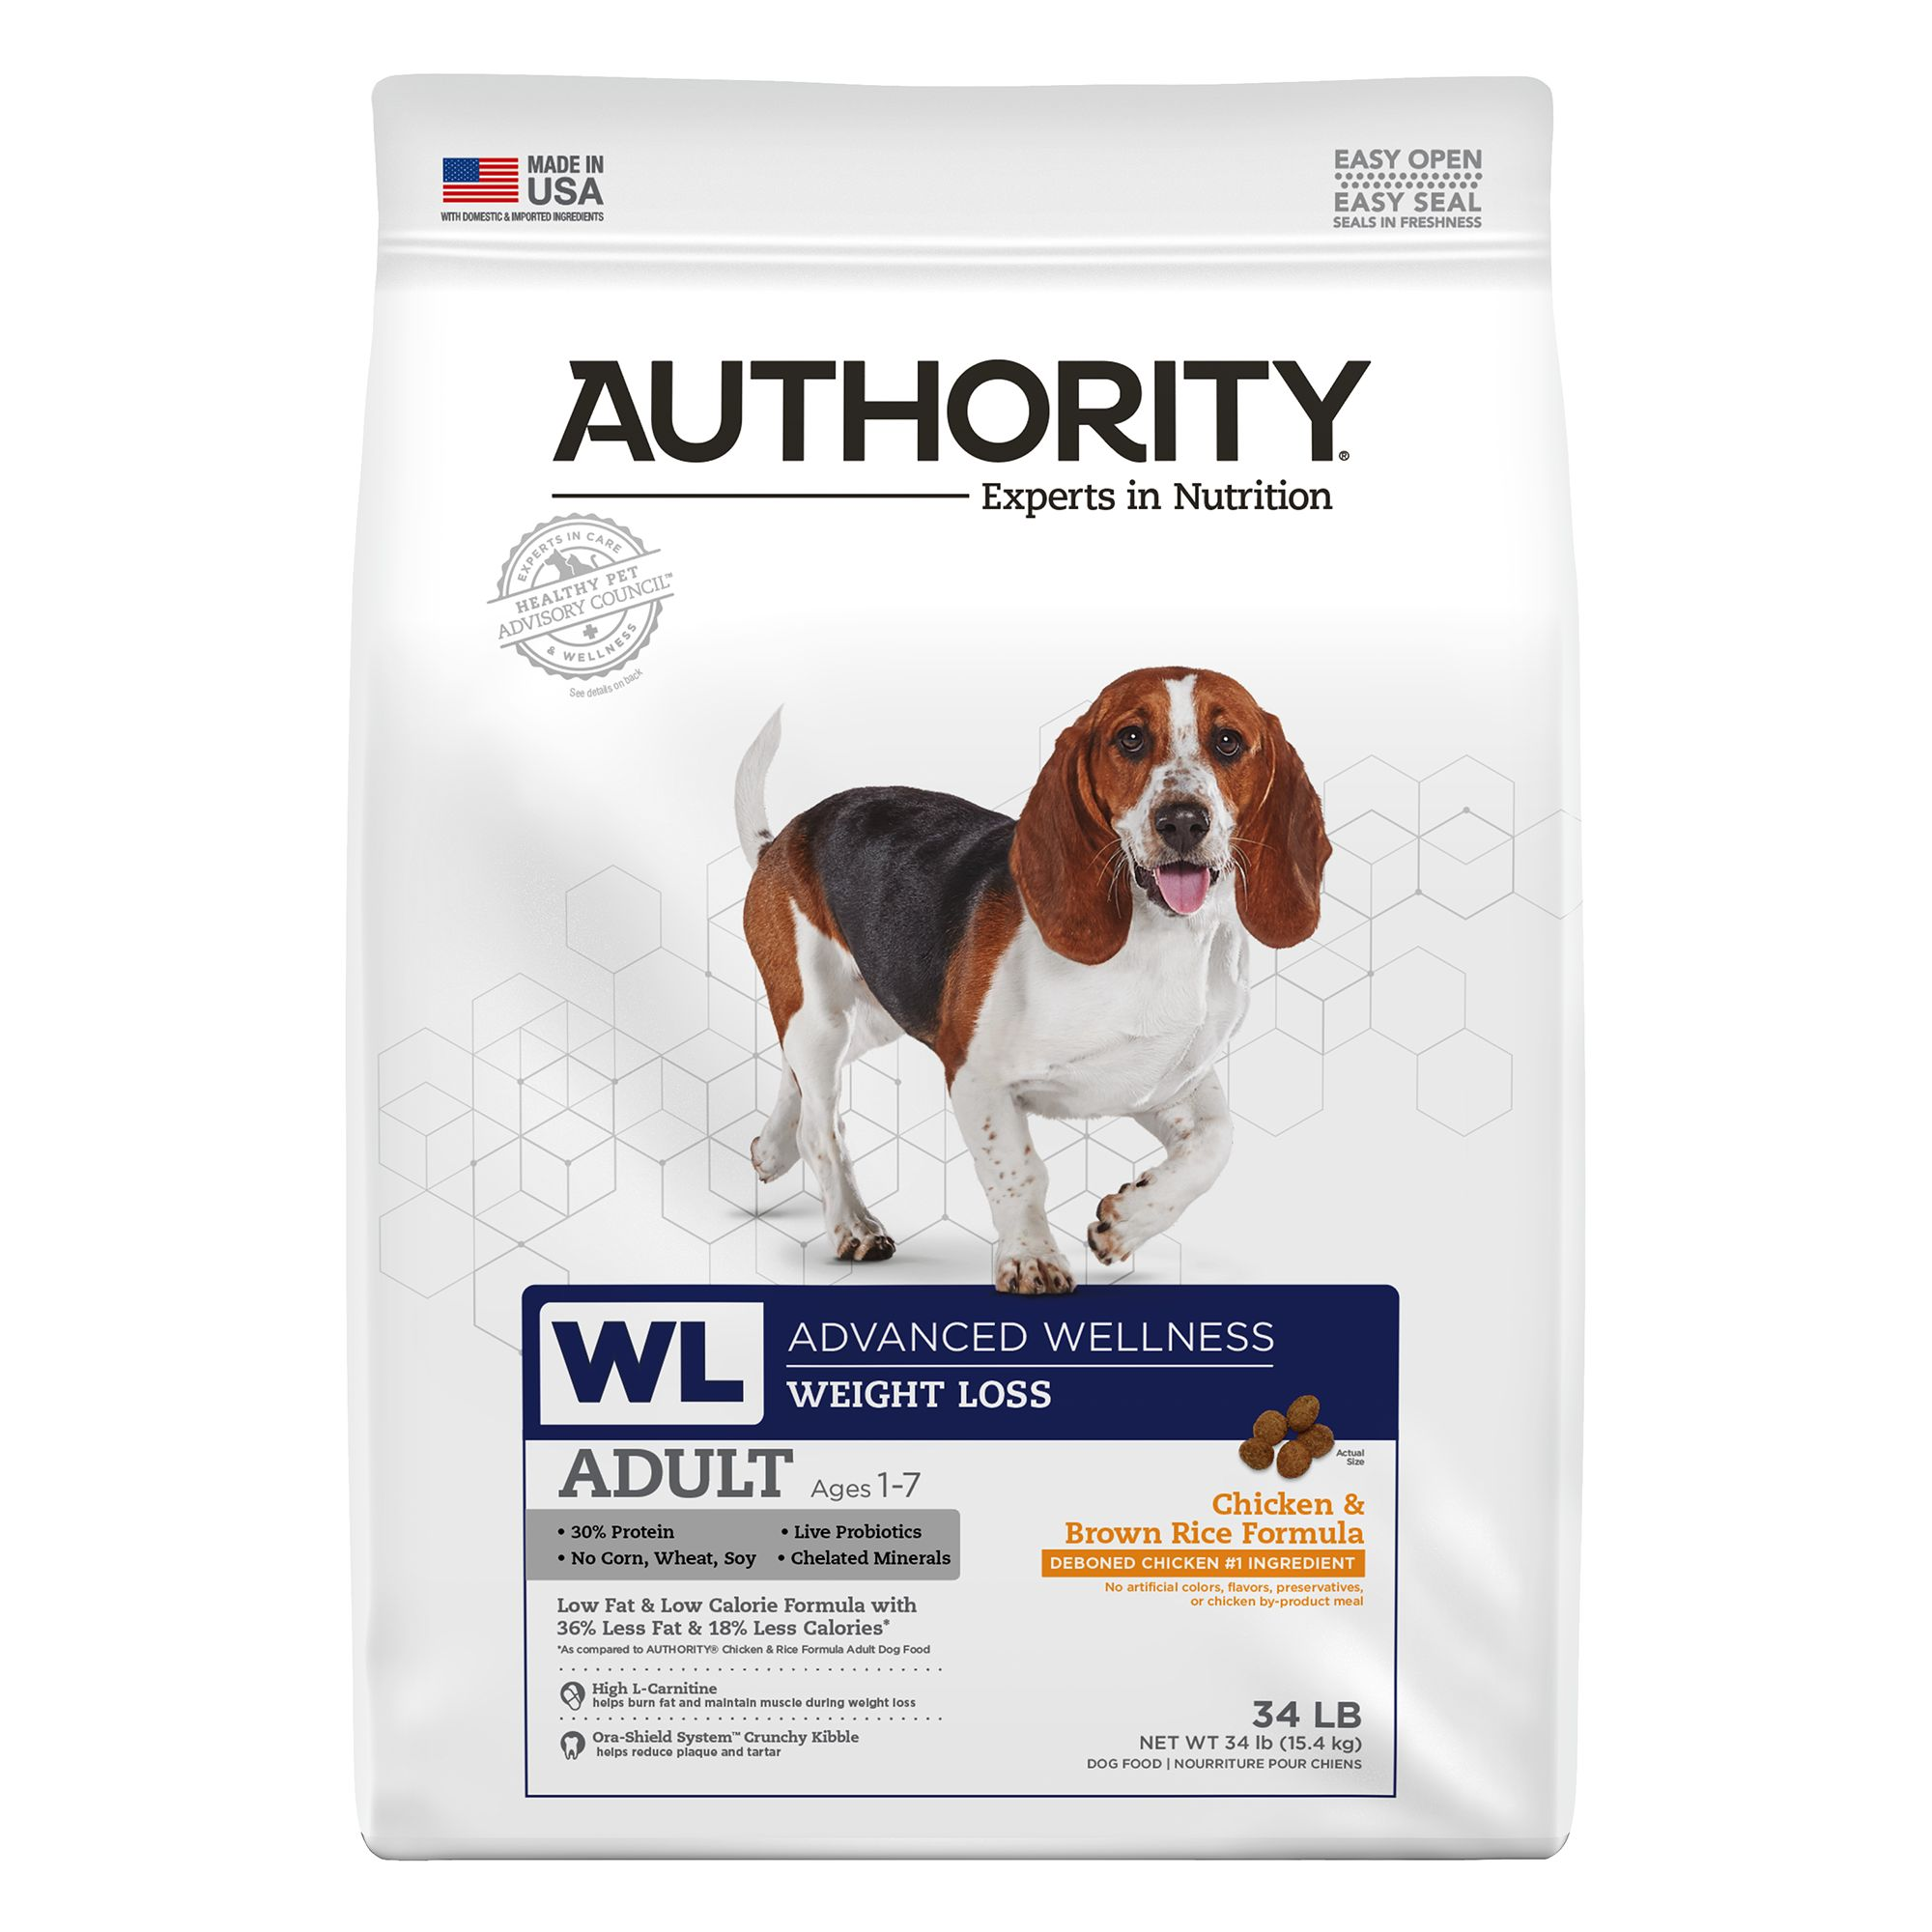 Authority Advanced Wellness Weight Loss Dog Food